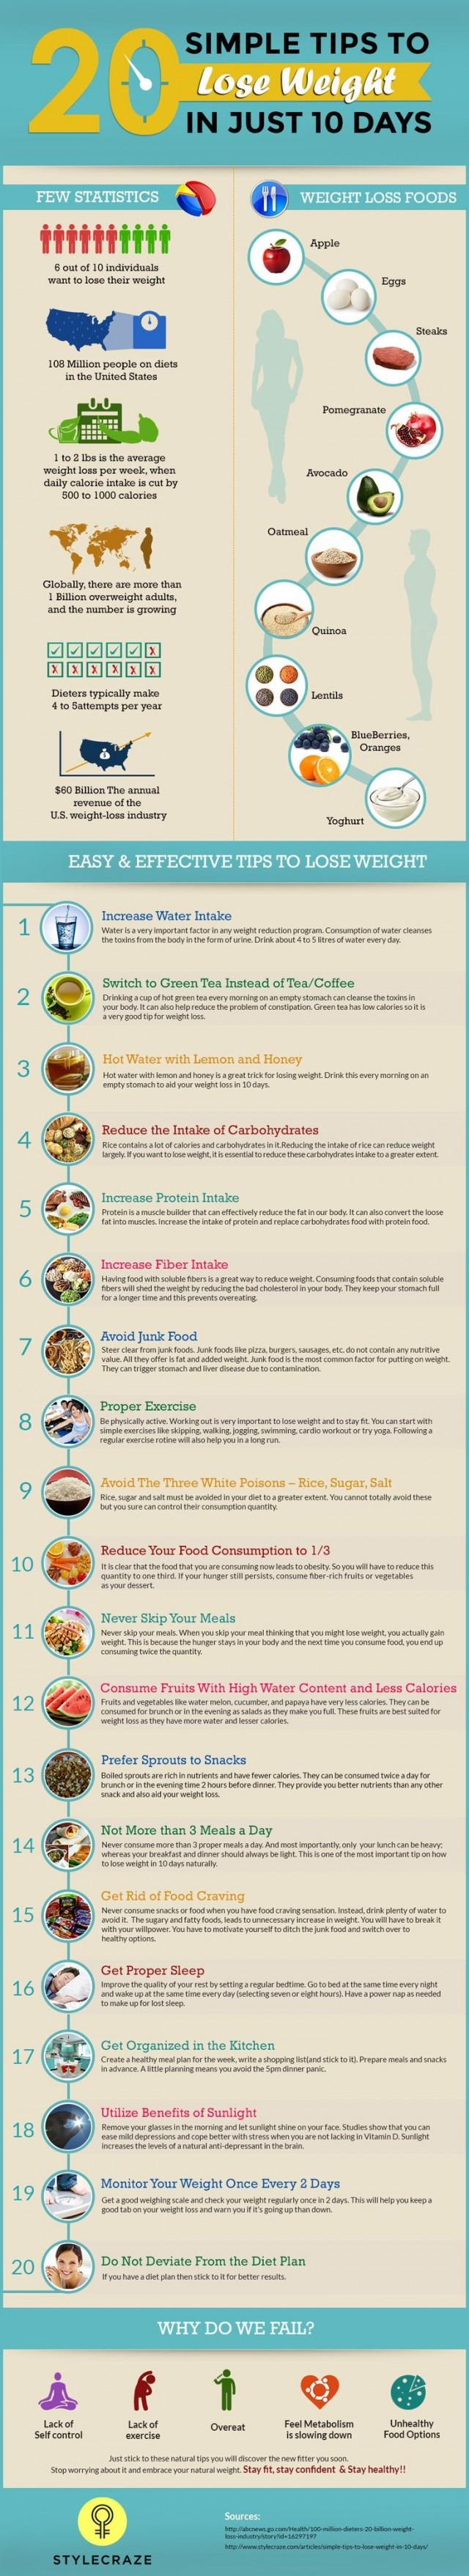 how to lose weight in 10 days diet plan